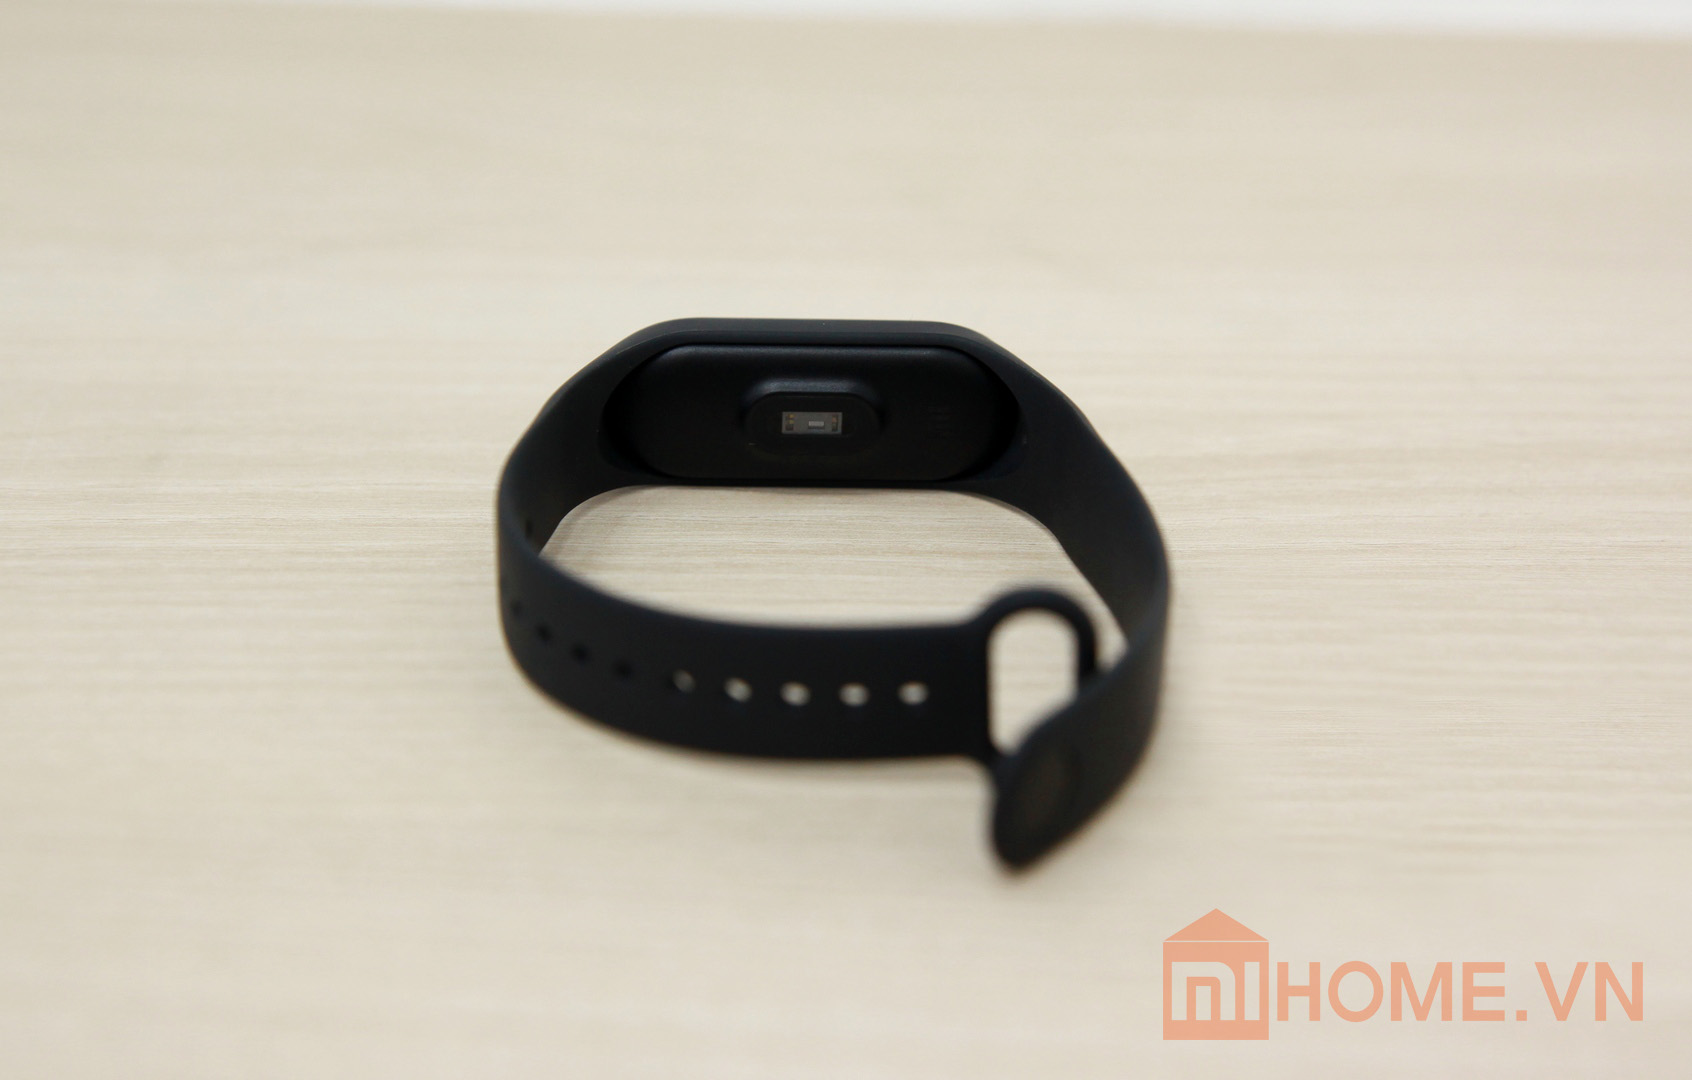 vong deo tay miband3 6